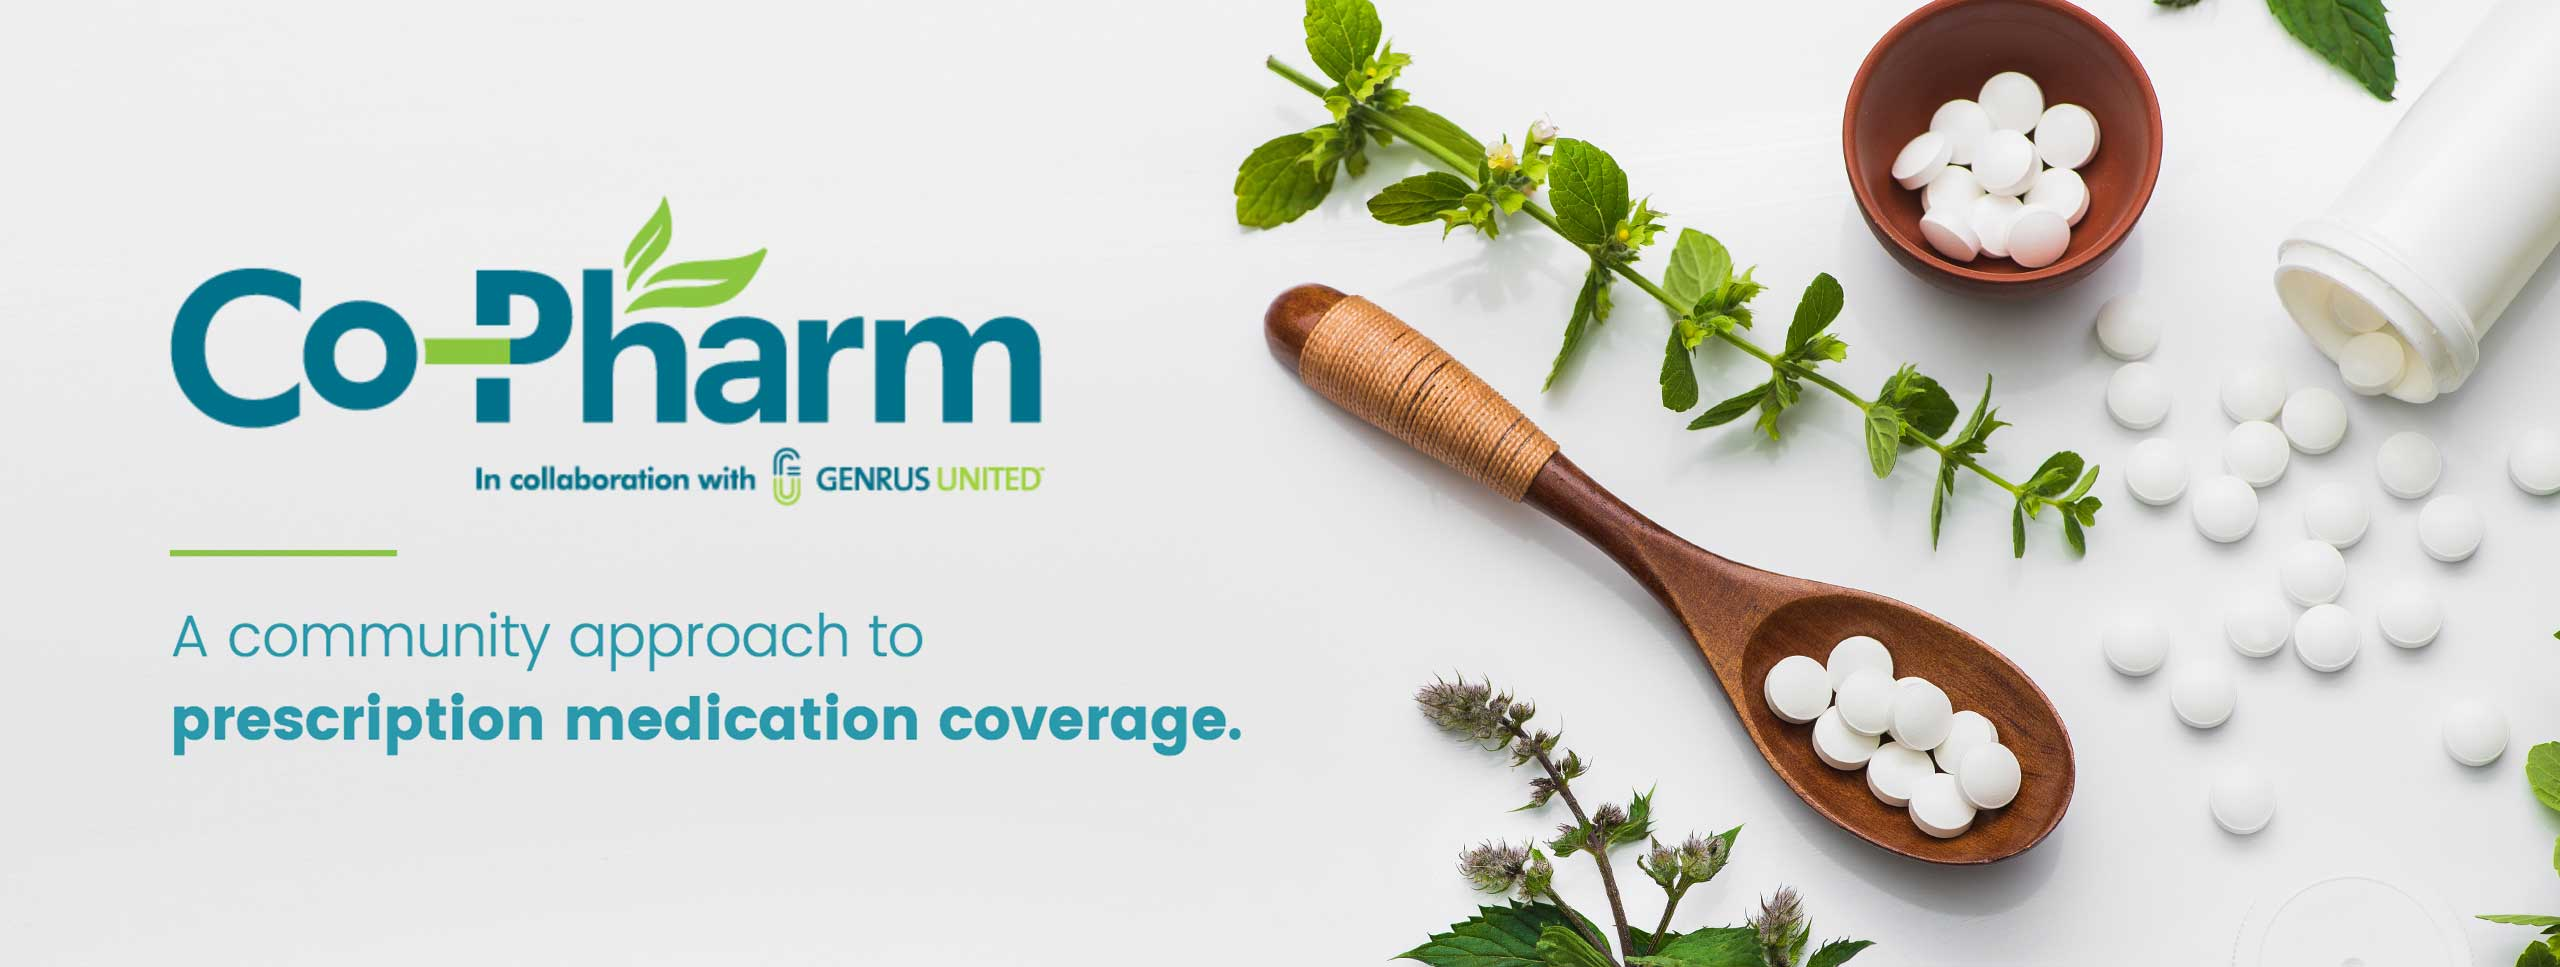 Co-Pharm and Genrus United community approach to prescription drugs